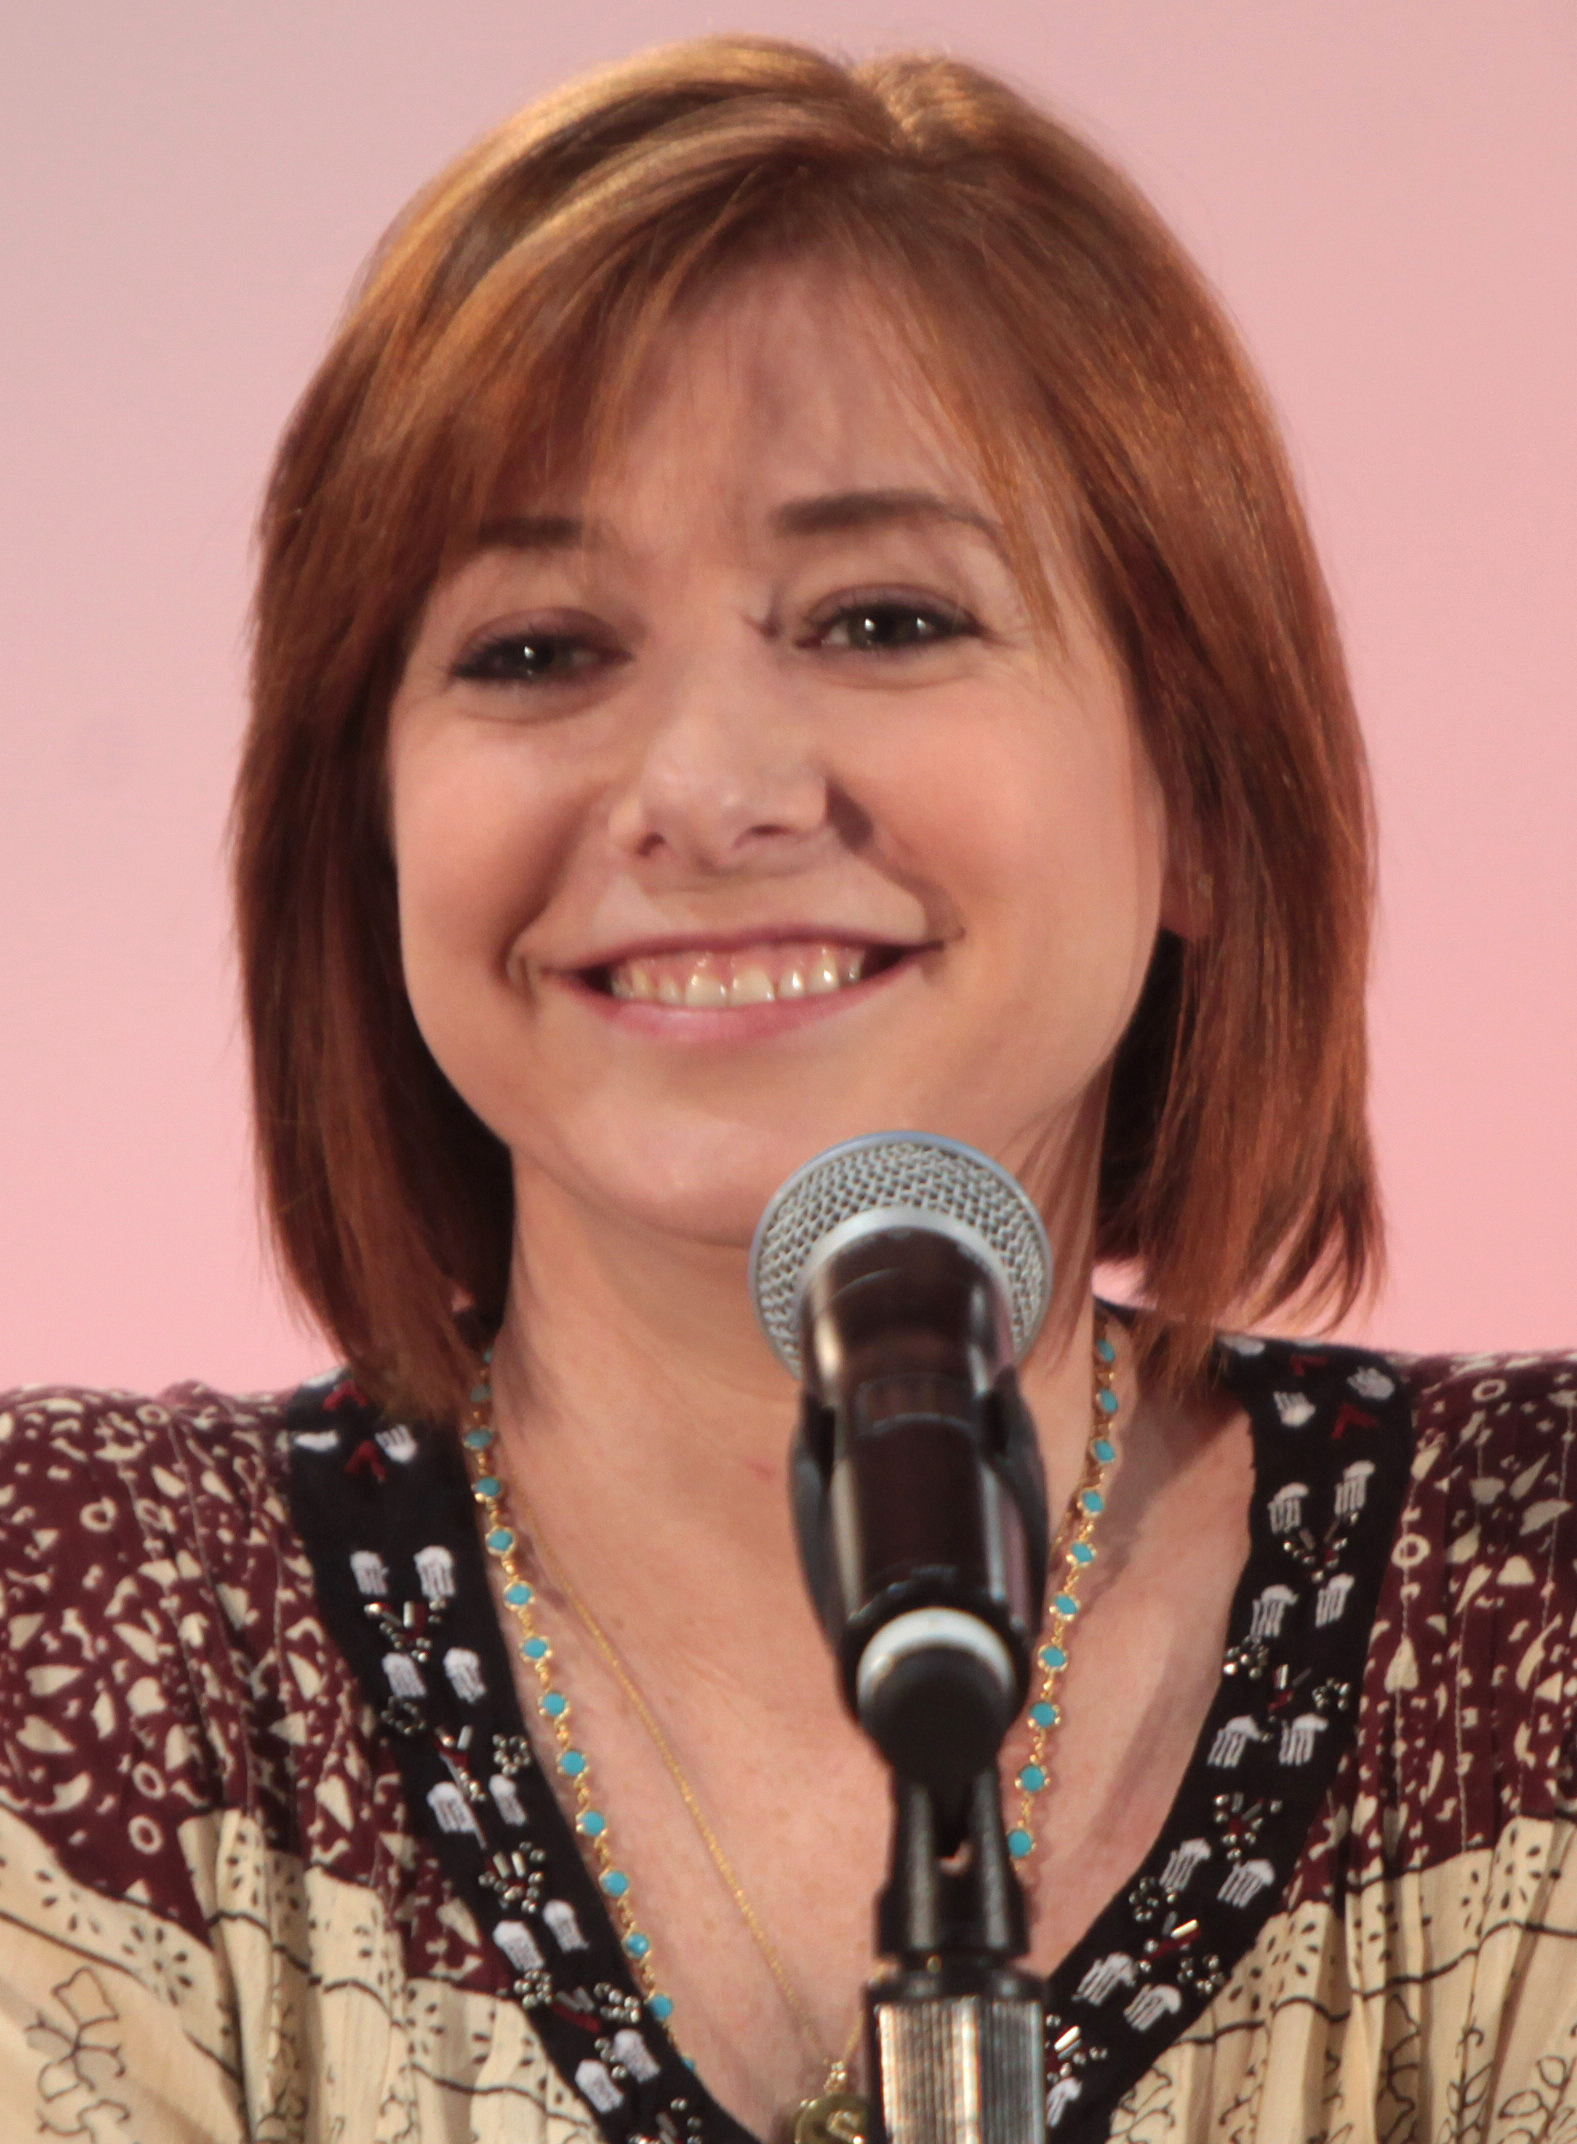 The 46-year old daughter of father (?) and mother(?) Alyson Hannigan in 2020 photo. Alyson Hannigan earned a 0.22 million dollar salary - leaving the net worth at 18 million in 2020